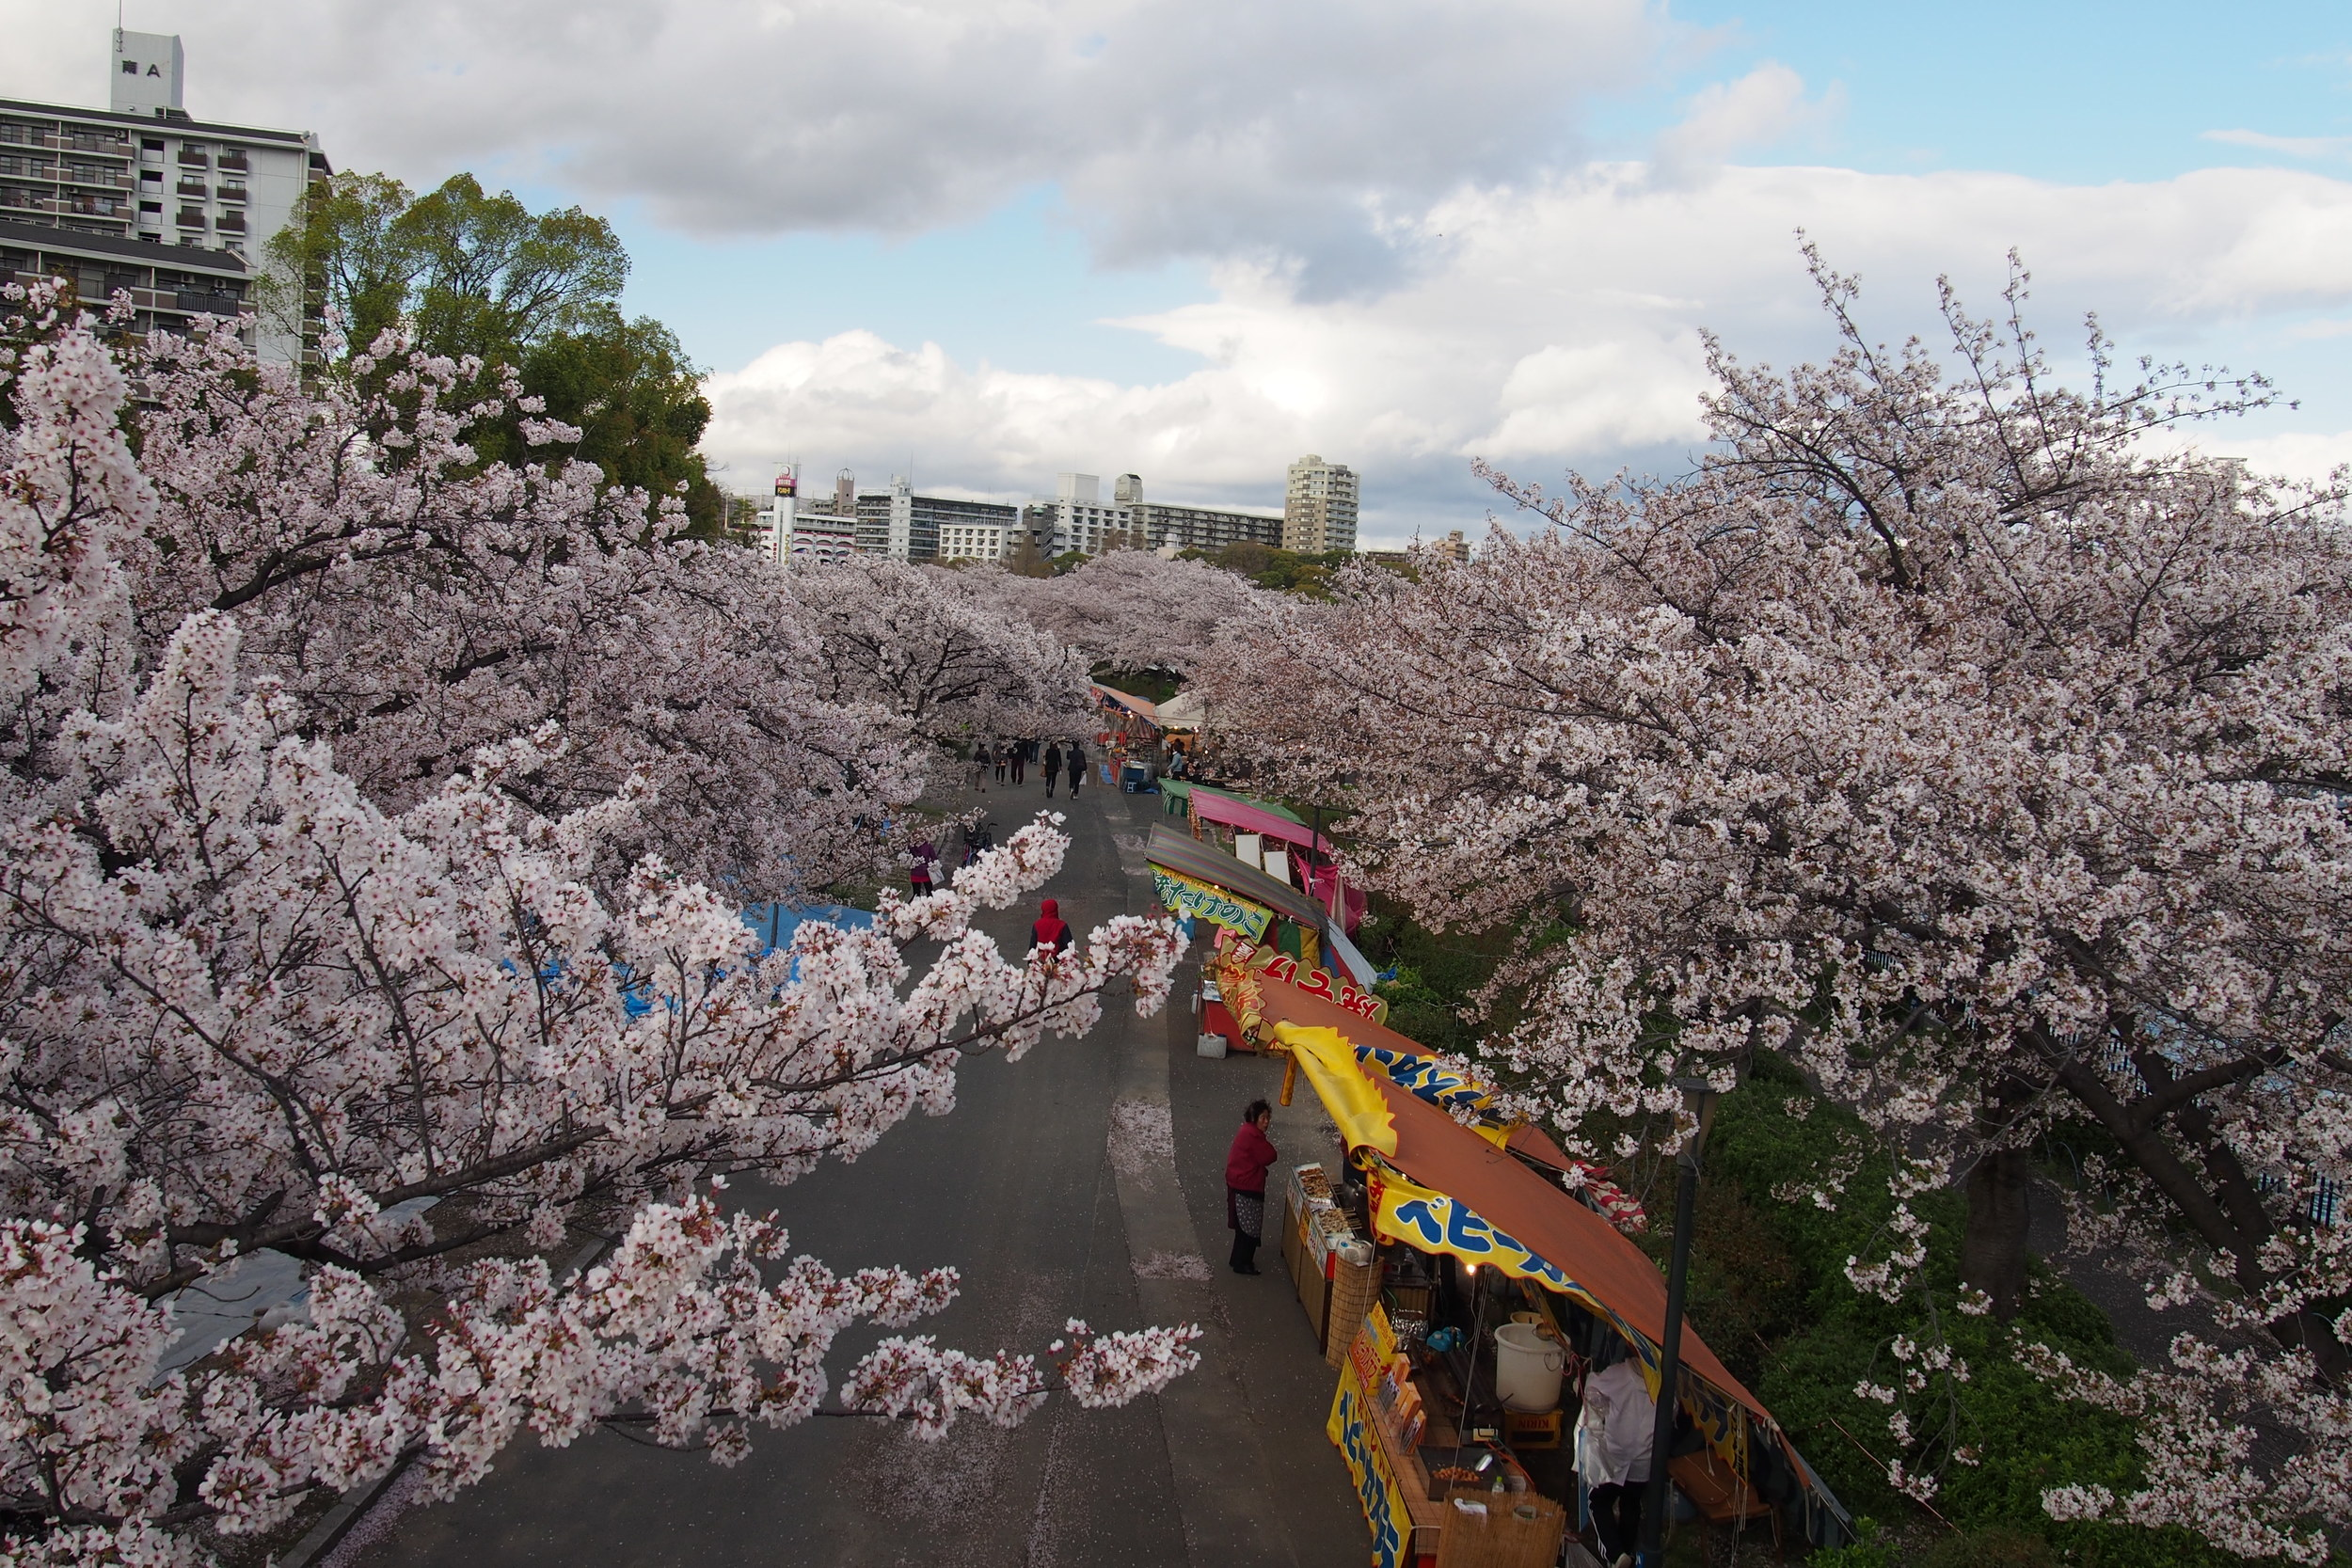 Stalls selling food and drinks for people who are hanami-ing